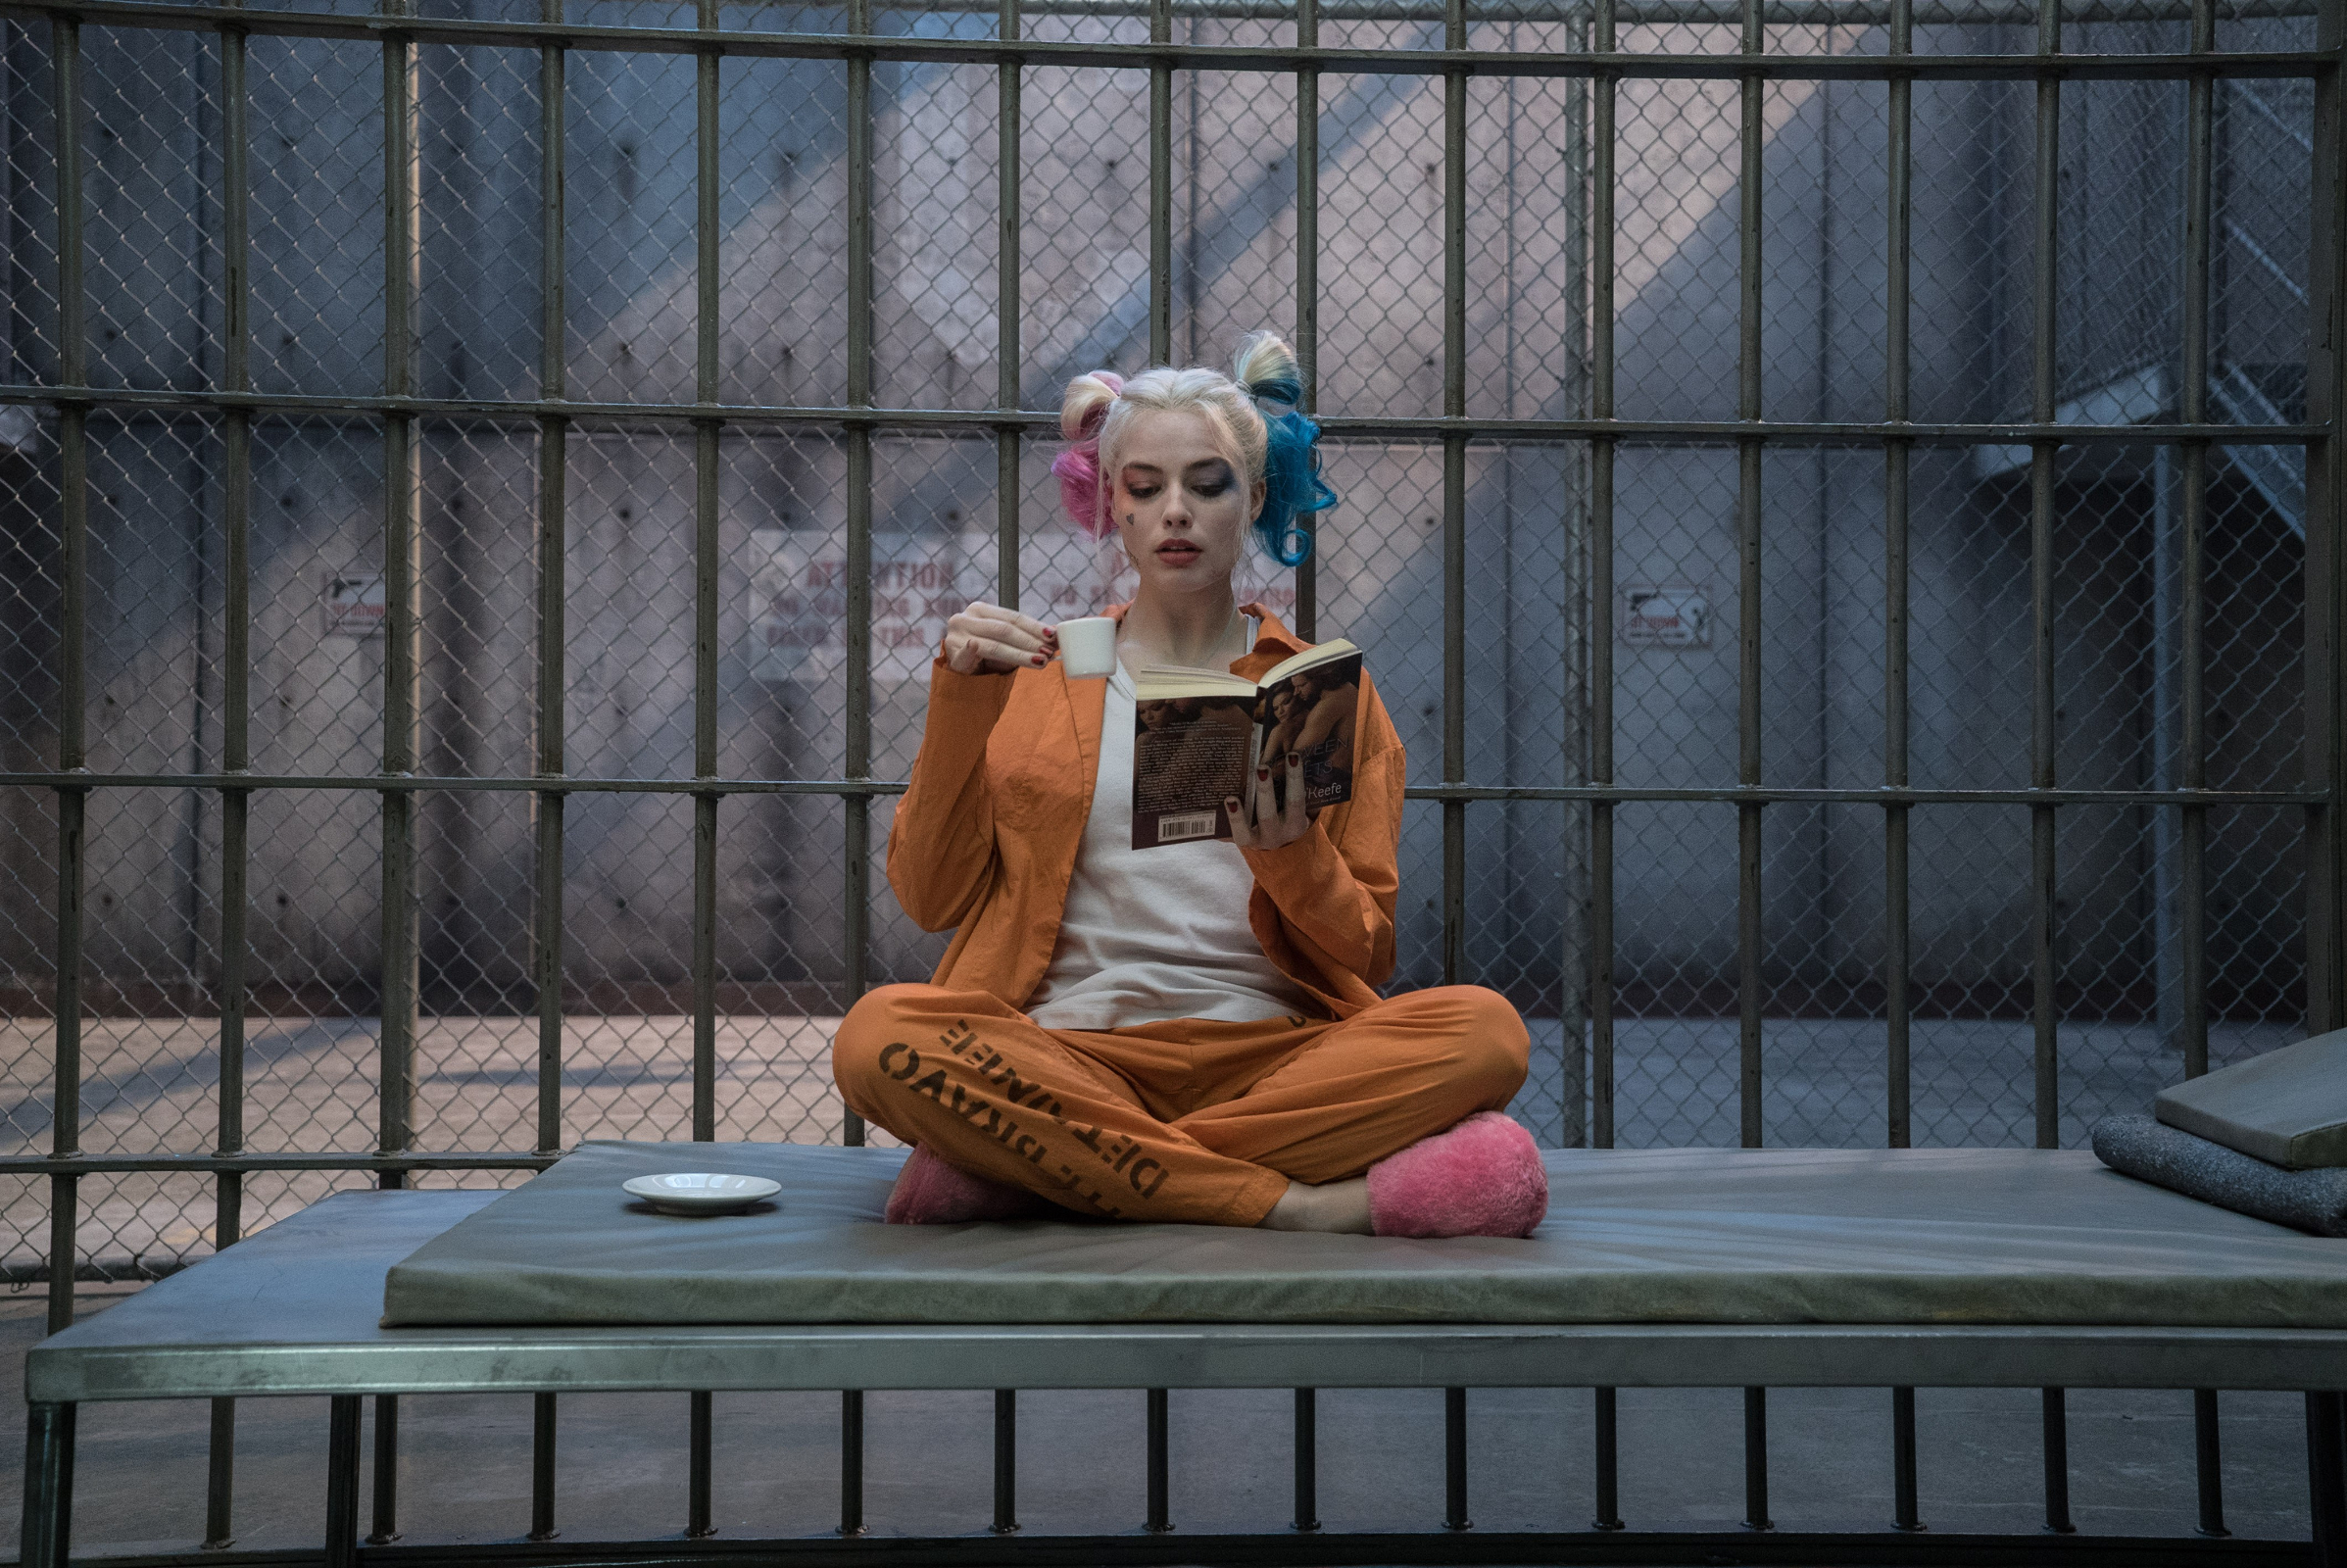 433 Harley Quinn Hd Wallpapers Background Images Wallpaper Abyss